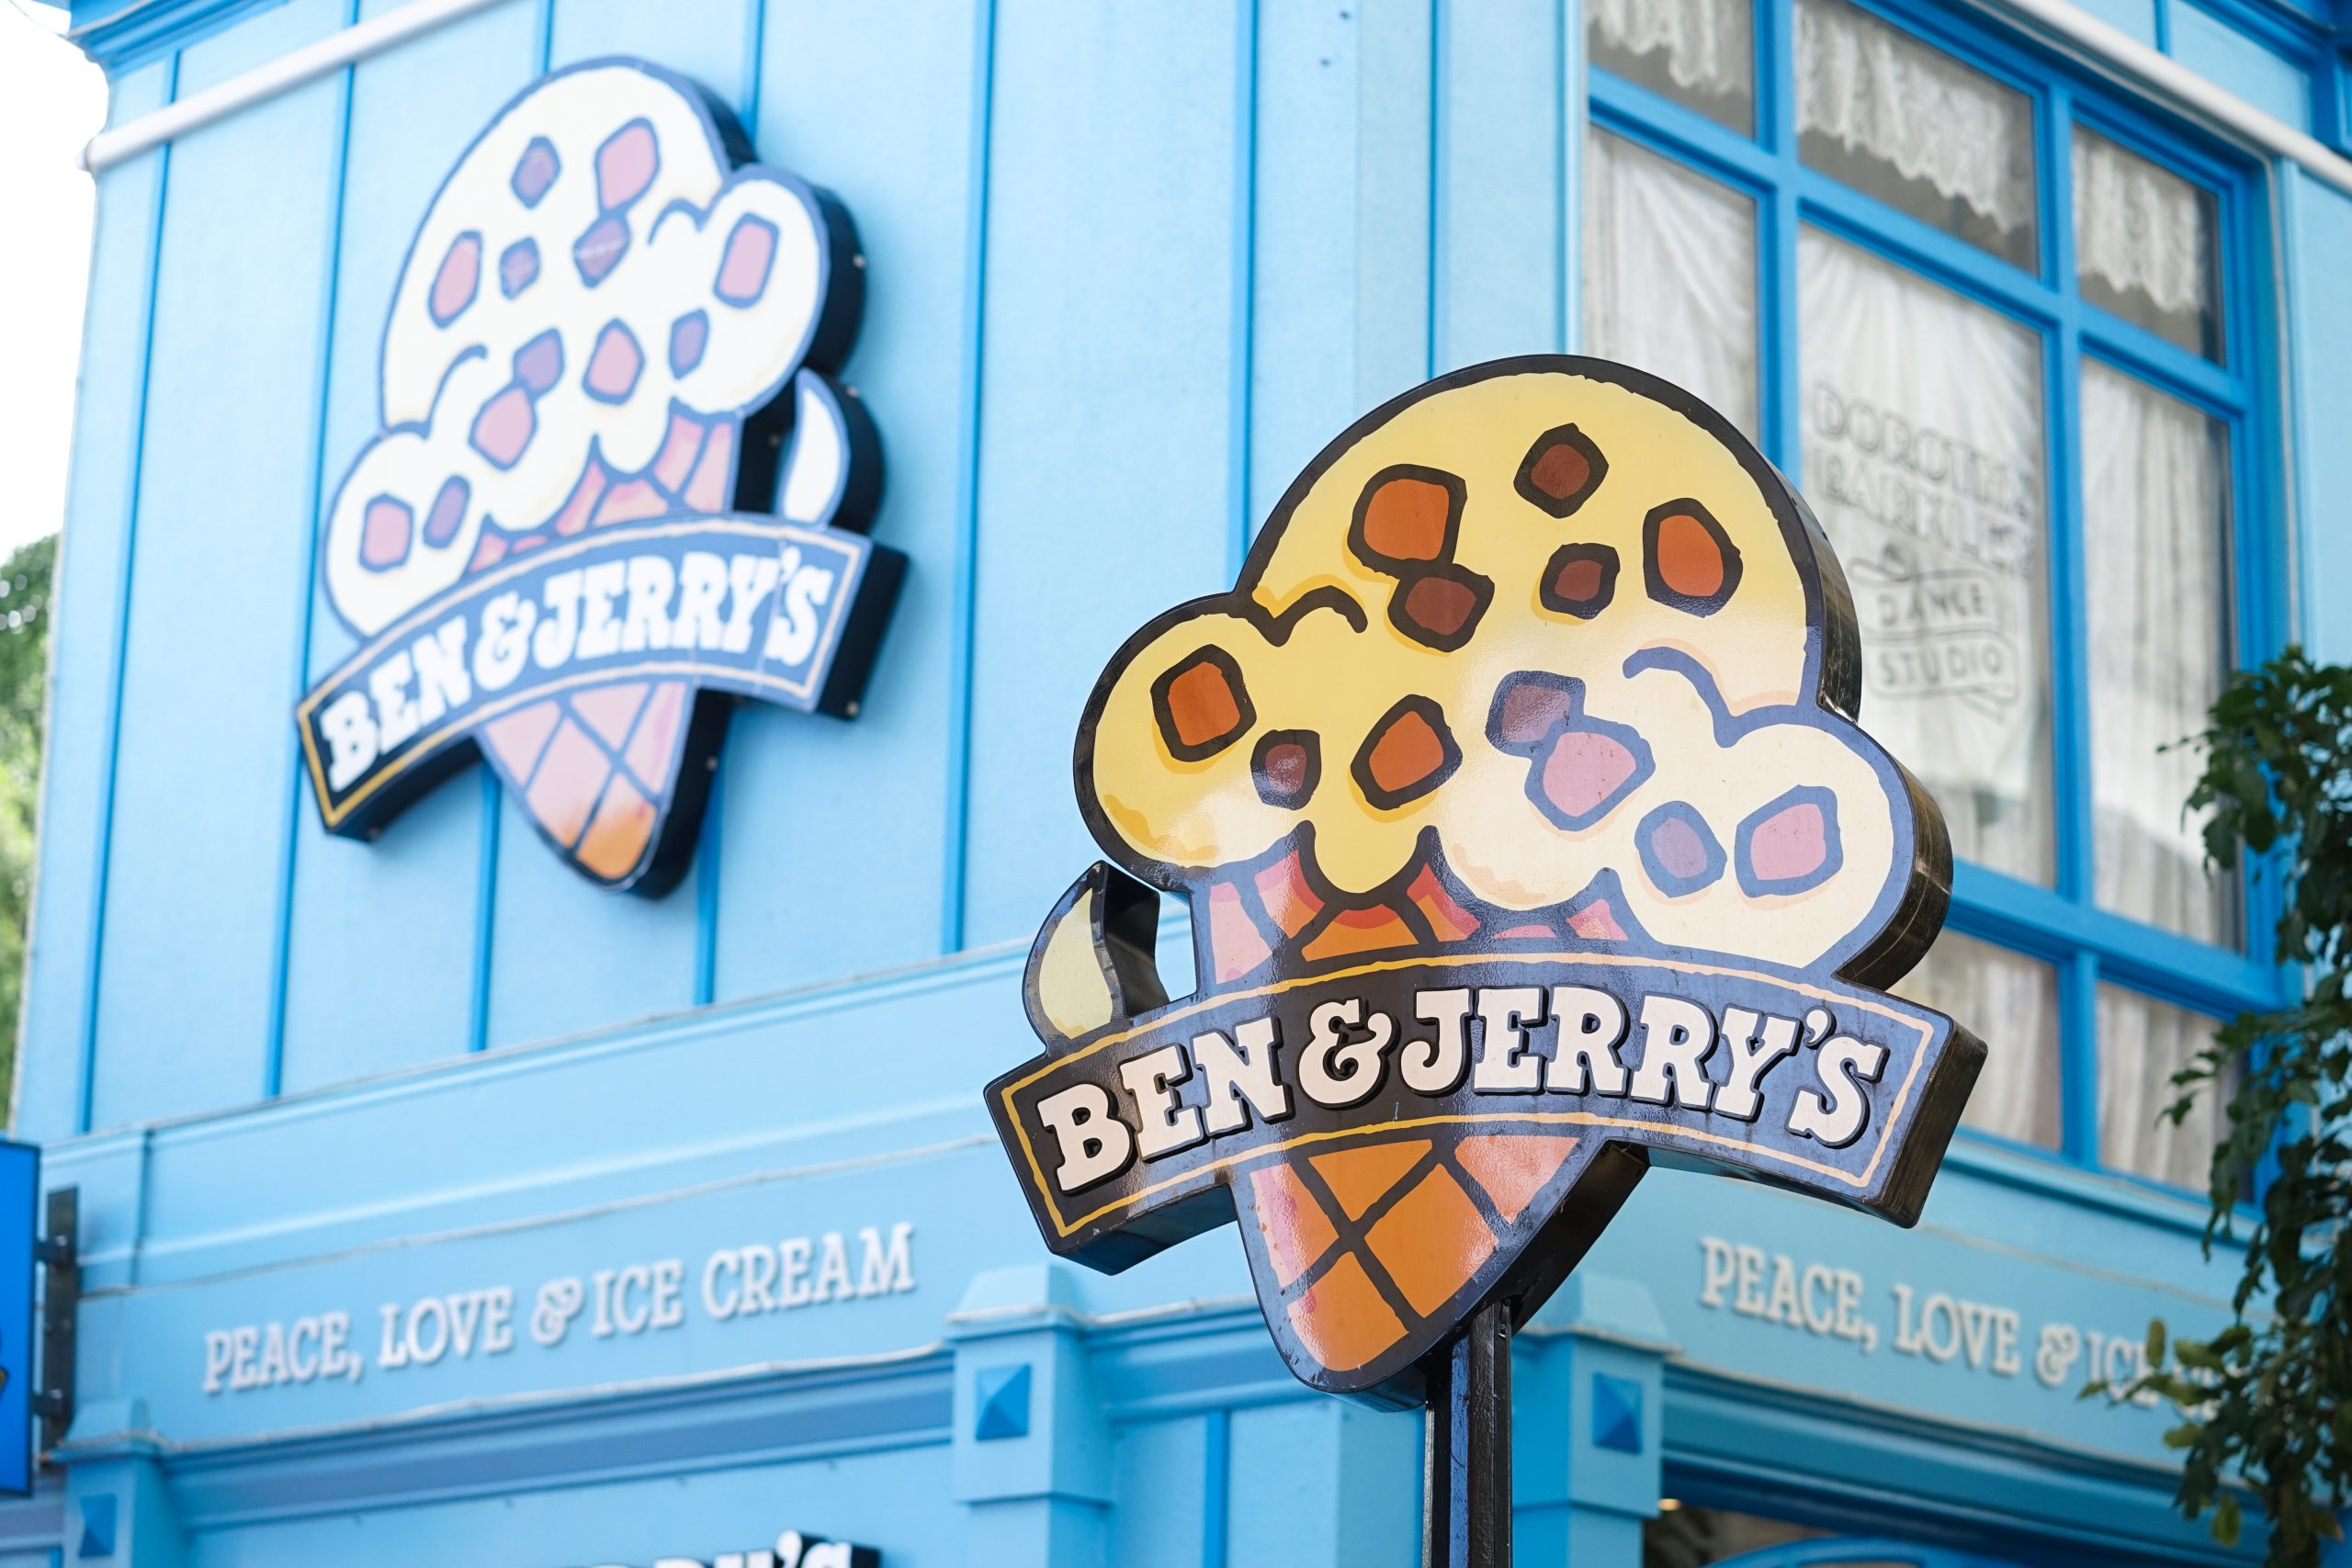 Why Ben & Jerry's Corporate Statement Stands Out